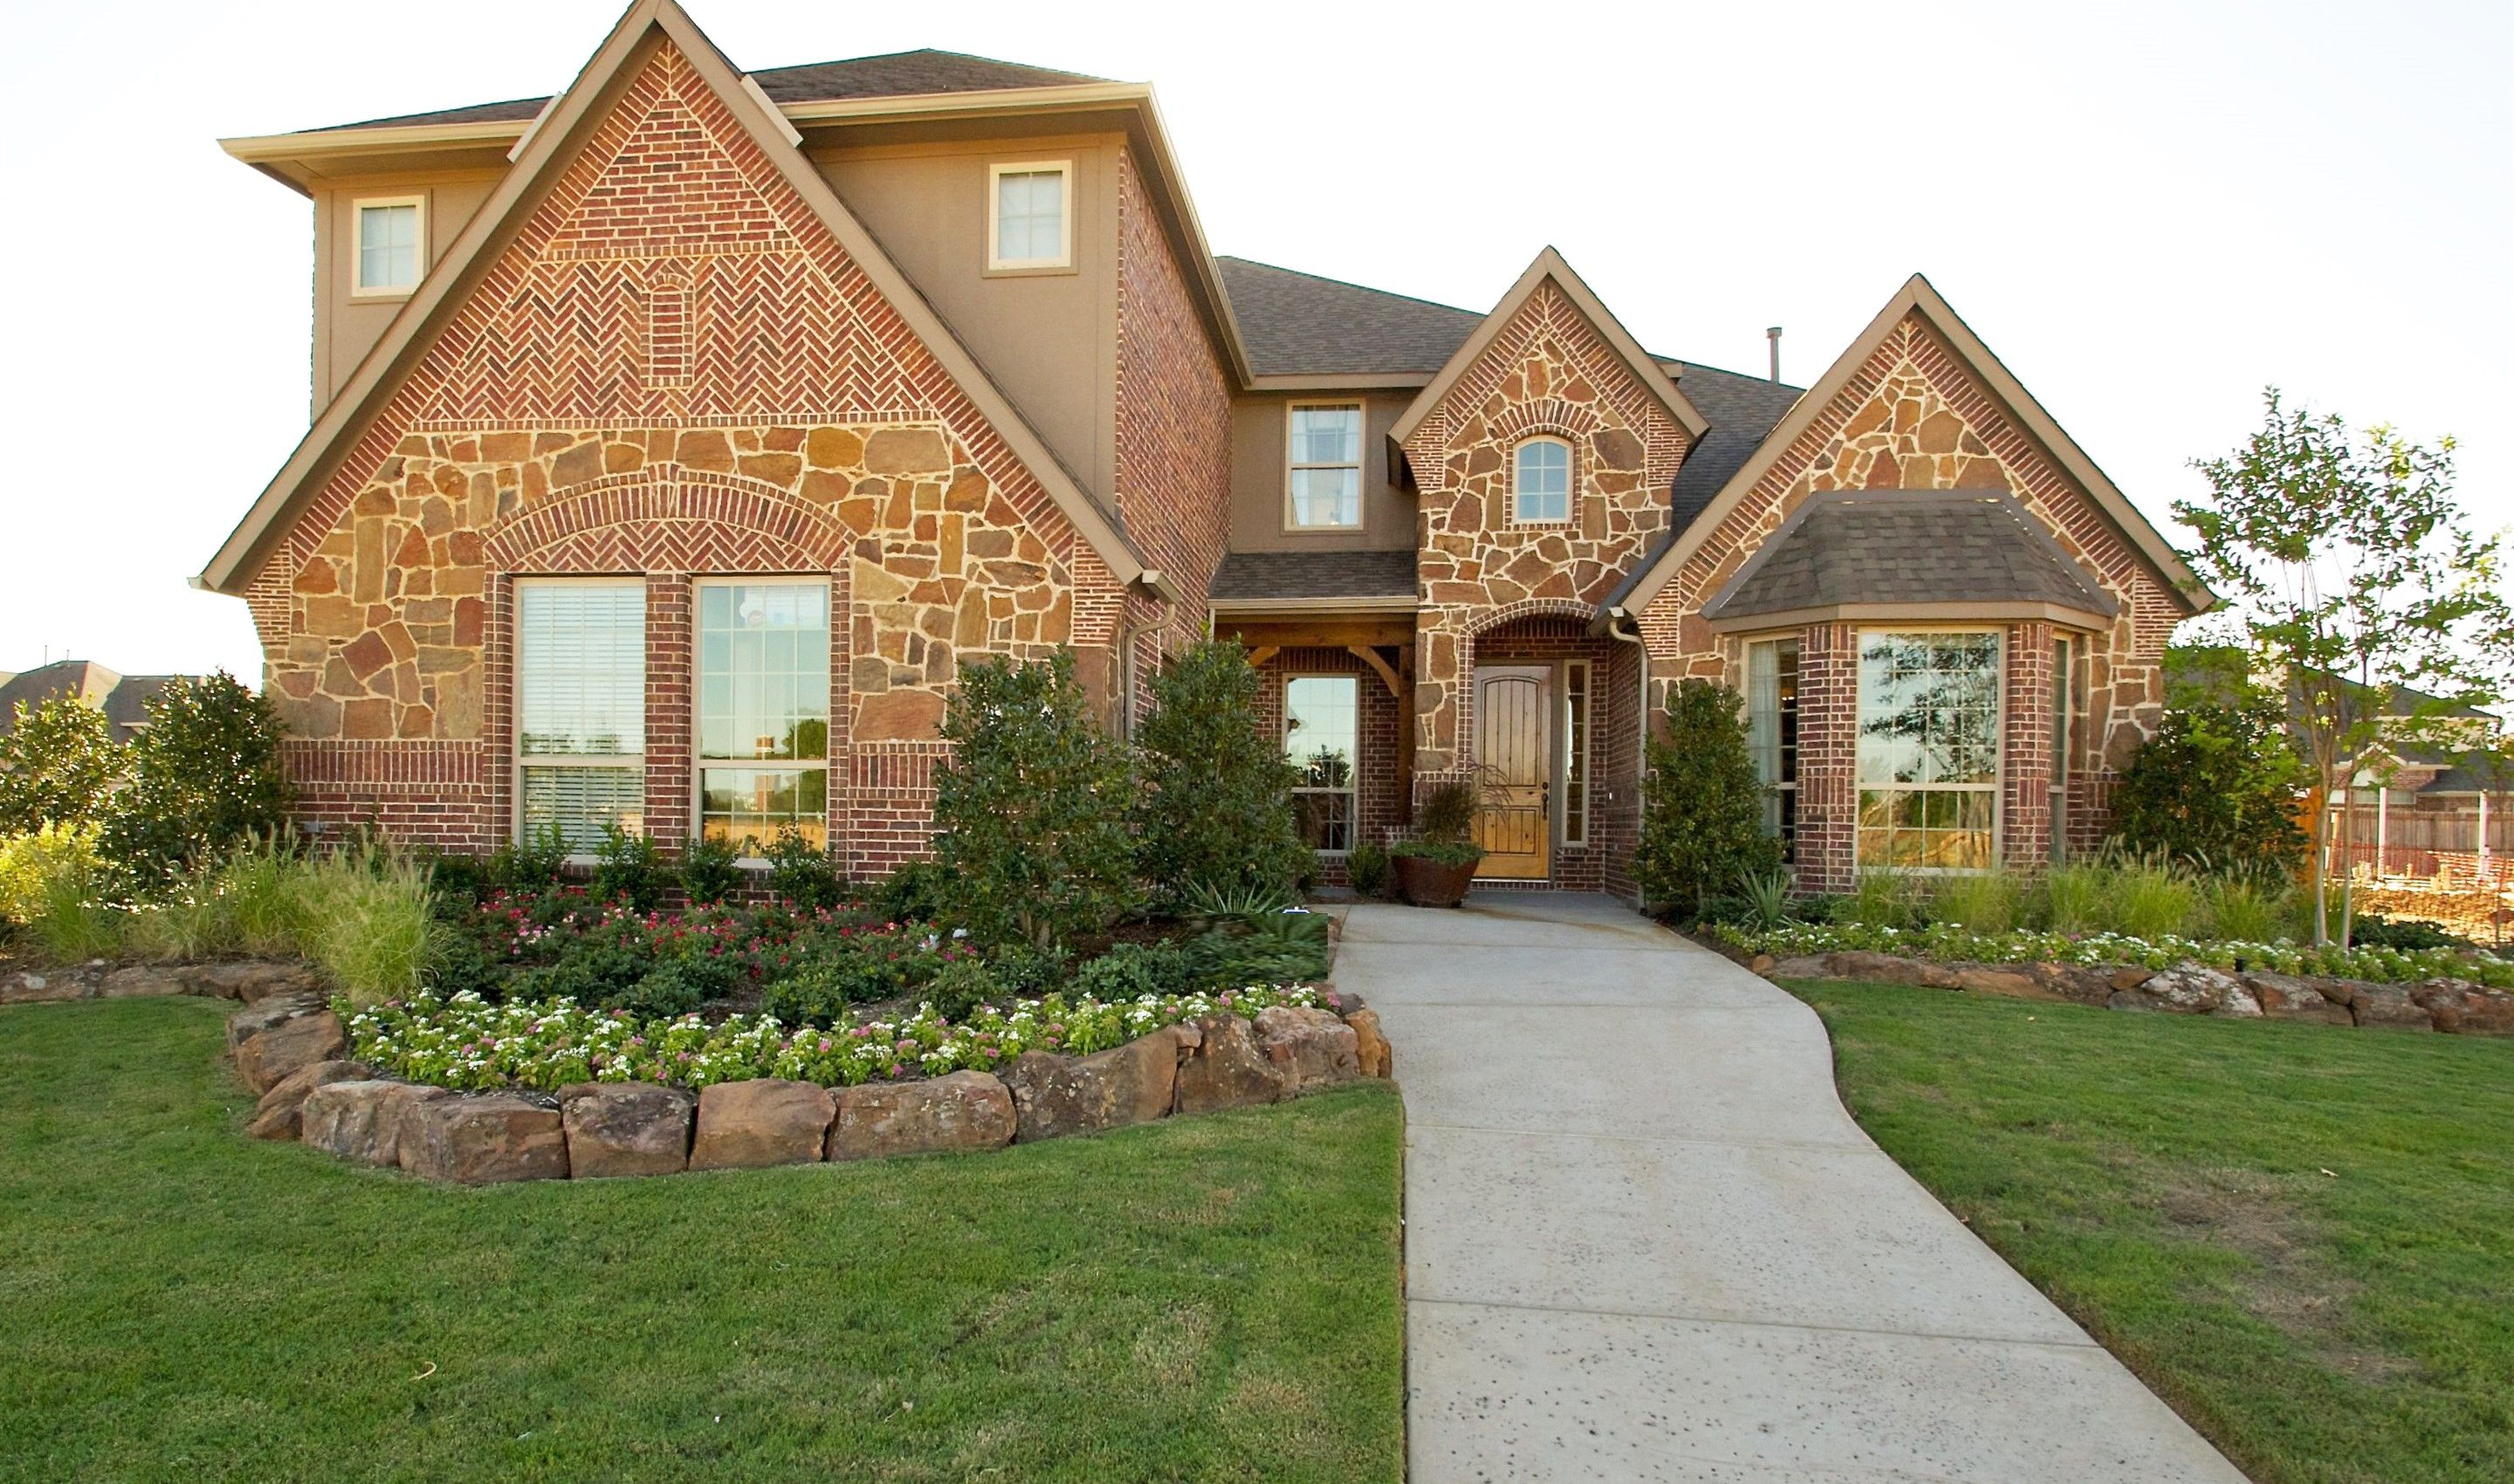 Real Estate at 620 Paint Creek Court, Homesite C-13, Murphy in Collin County, TX 75094